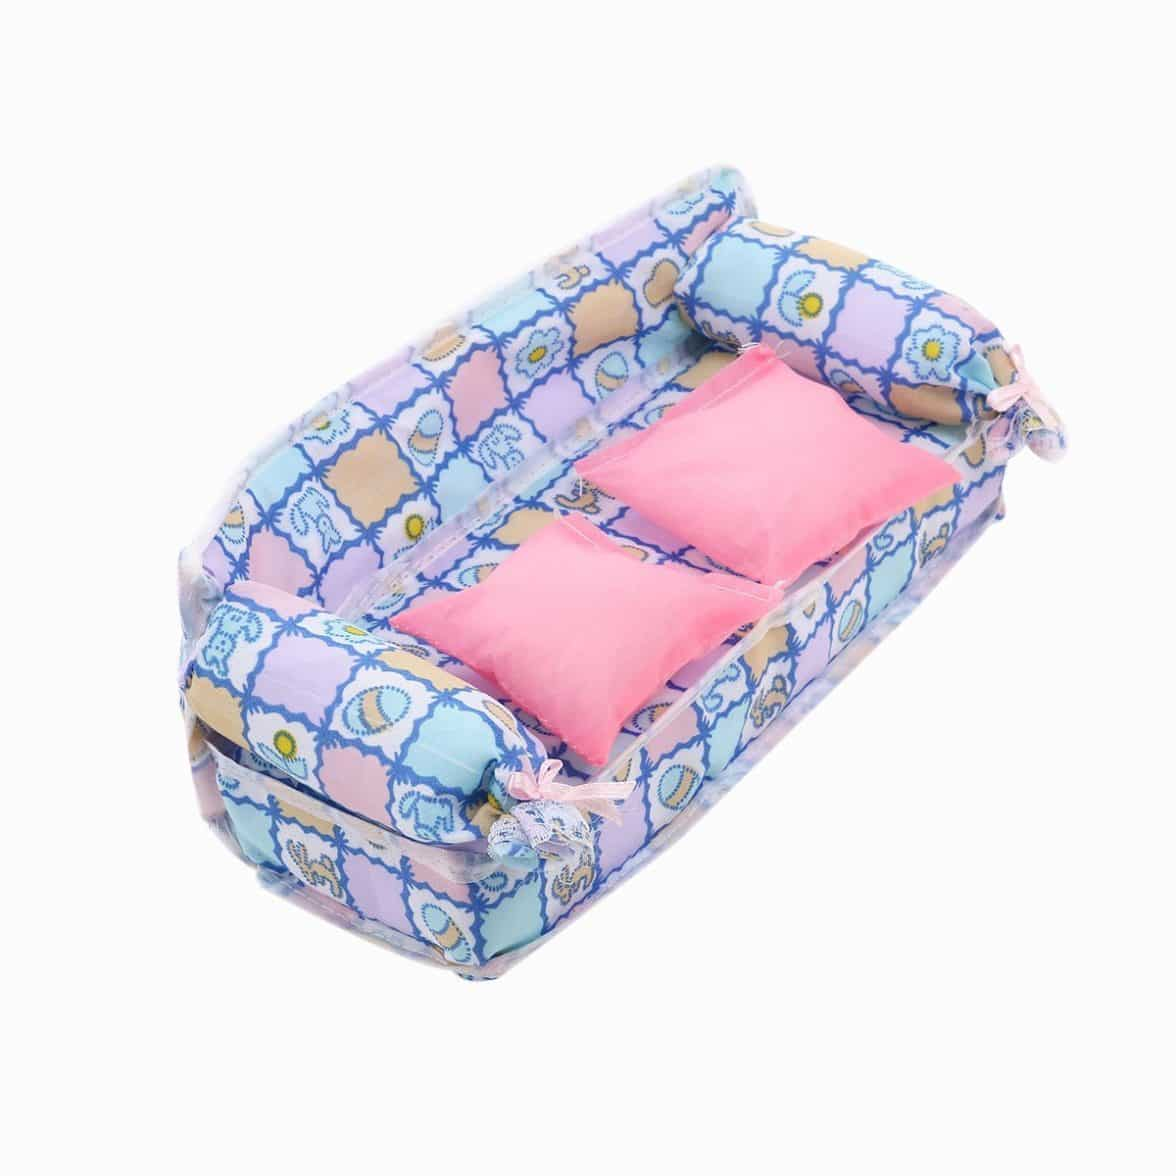 Tinksky Lovely Miniature Dollhouse Furniture Flower Print Sofa Couch